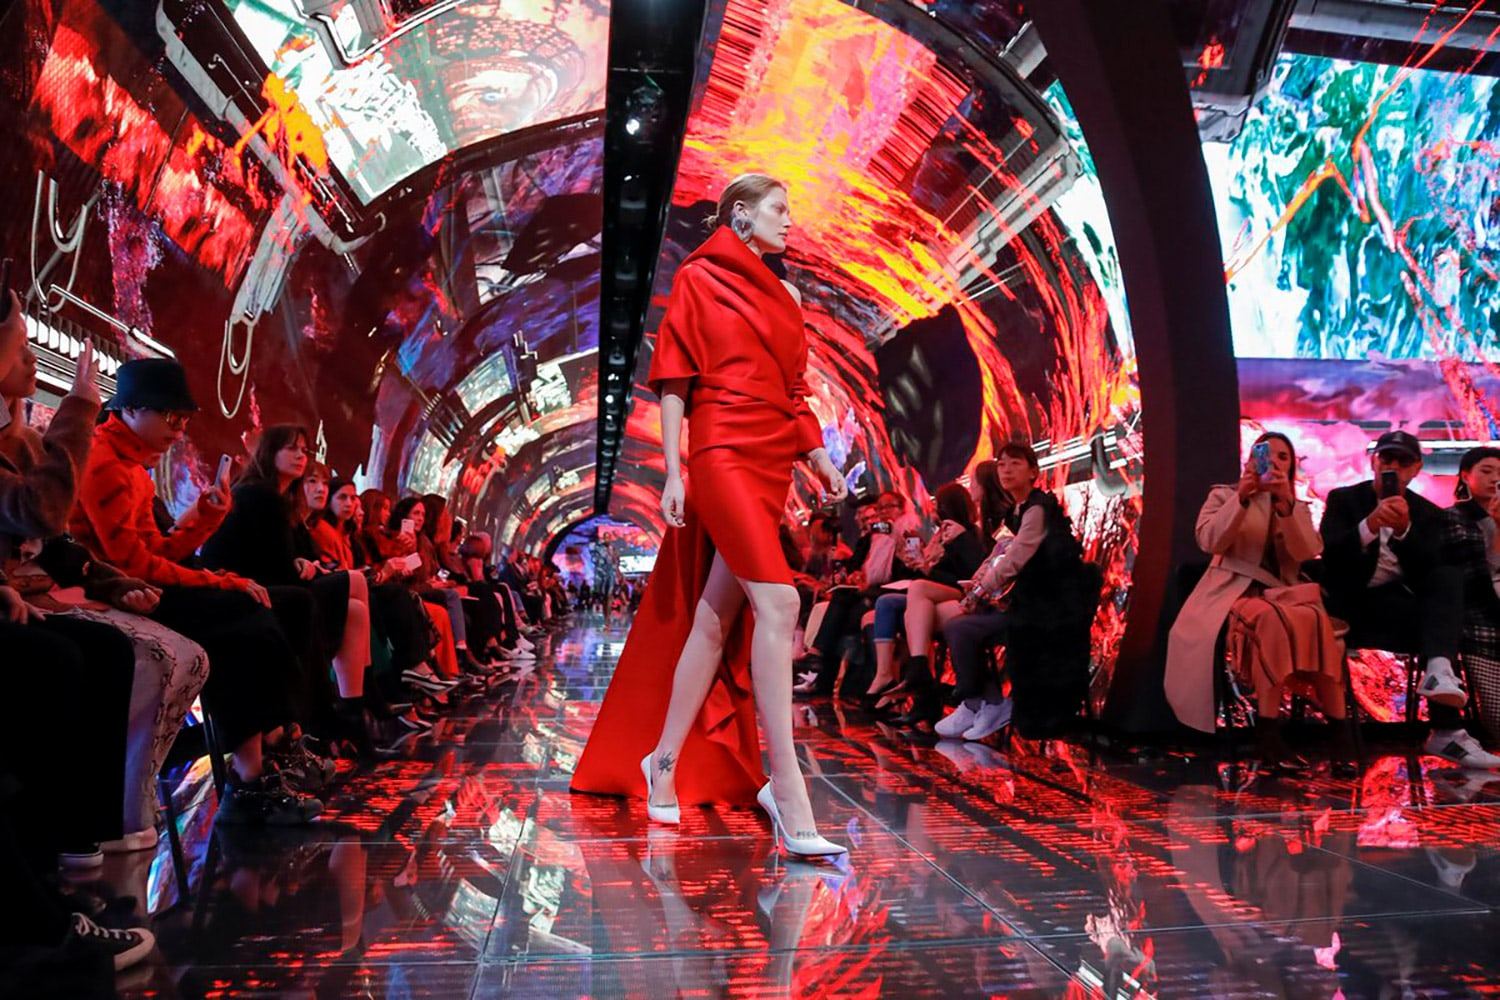 cuved led screens at paris fashion week